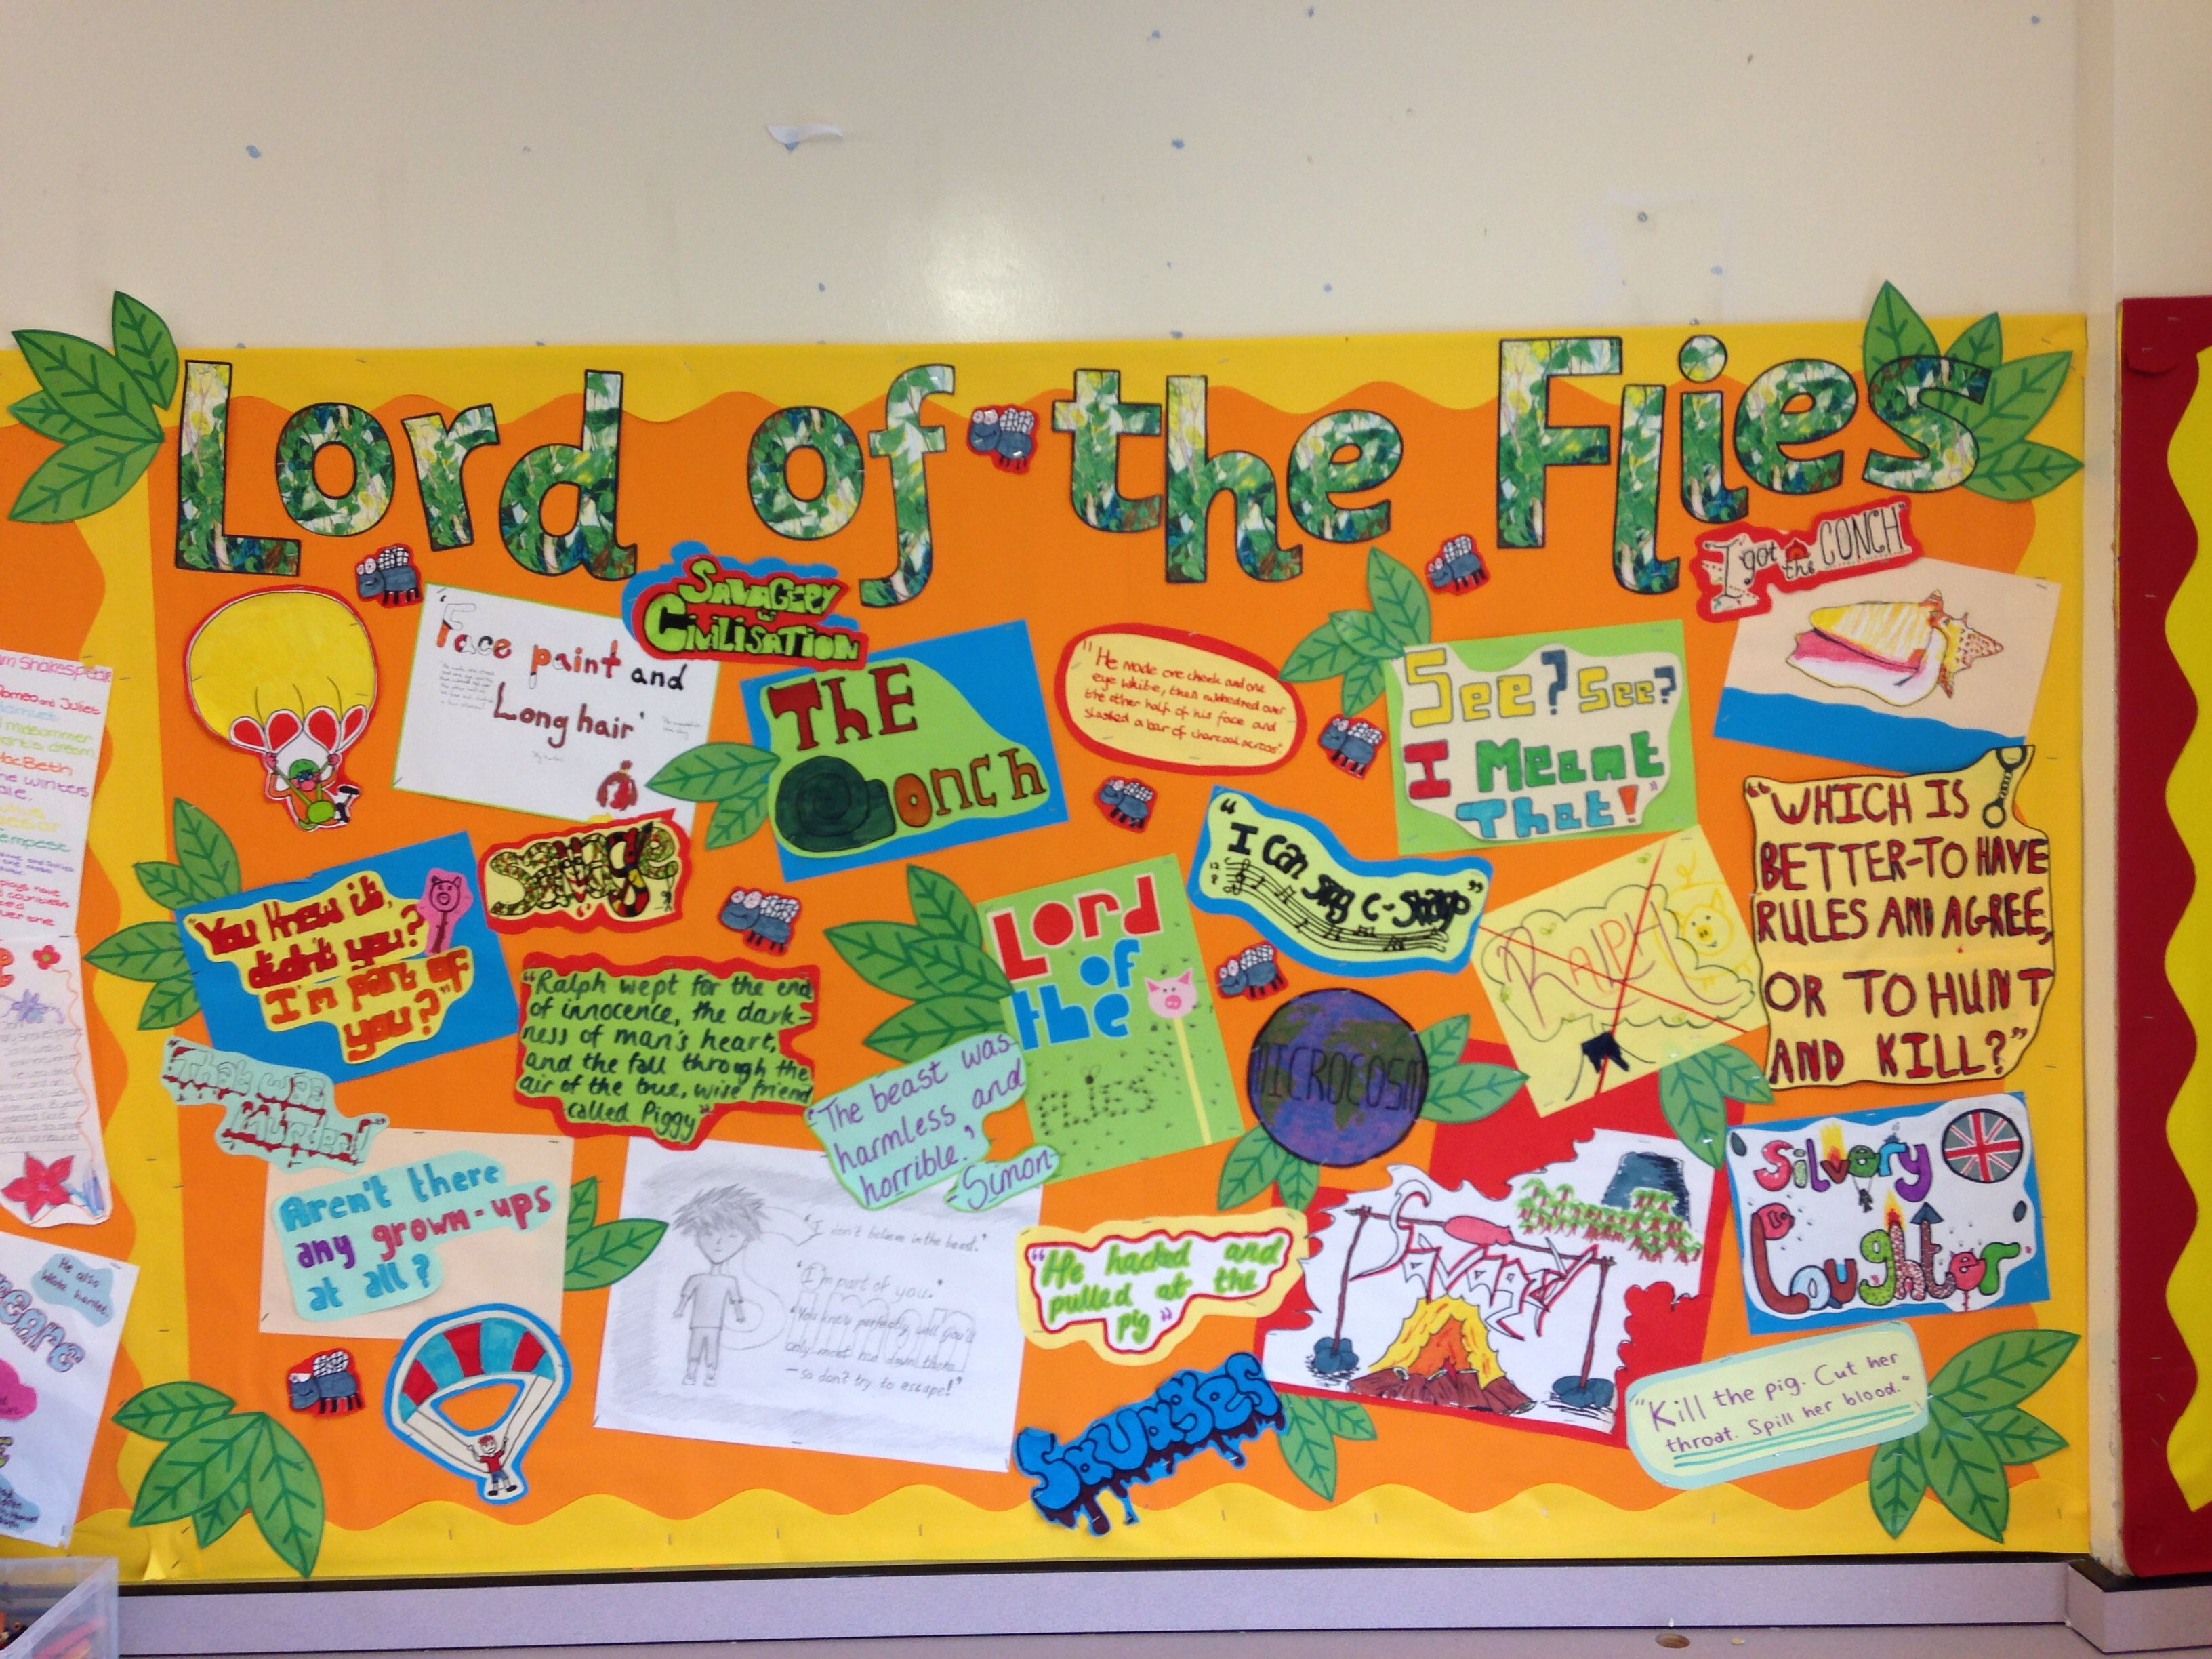 lord of the flies symbolism of objects the lord of the flies lord of the flies symbolism of objects the lord of the flies total language plus literature the fly and language